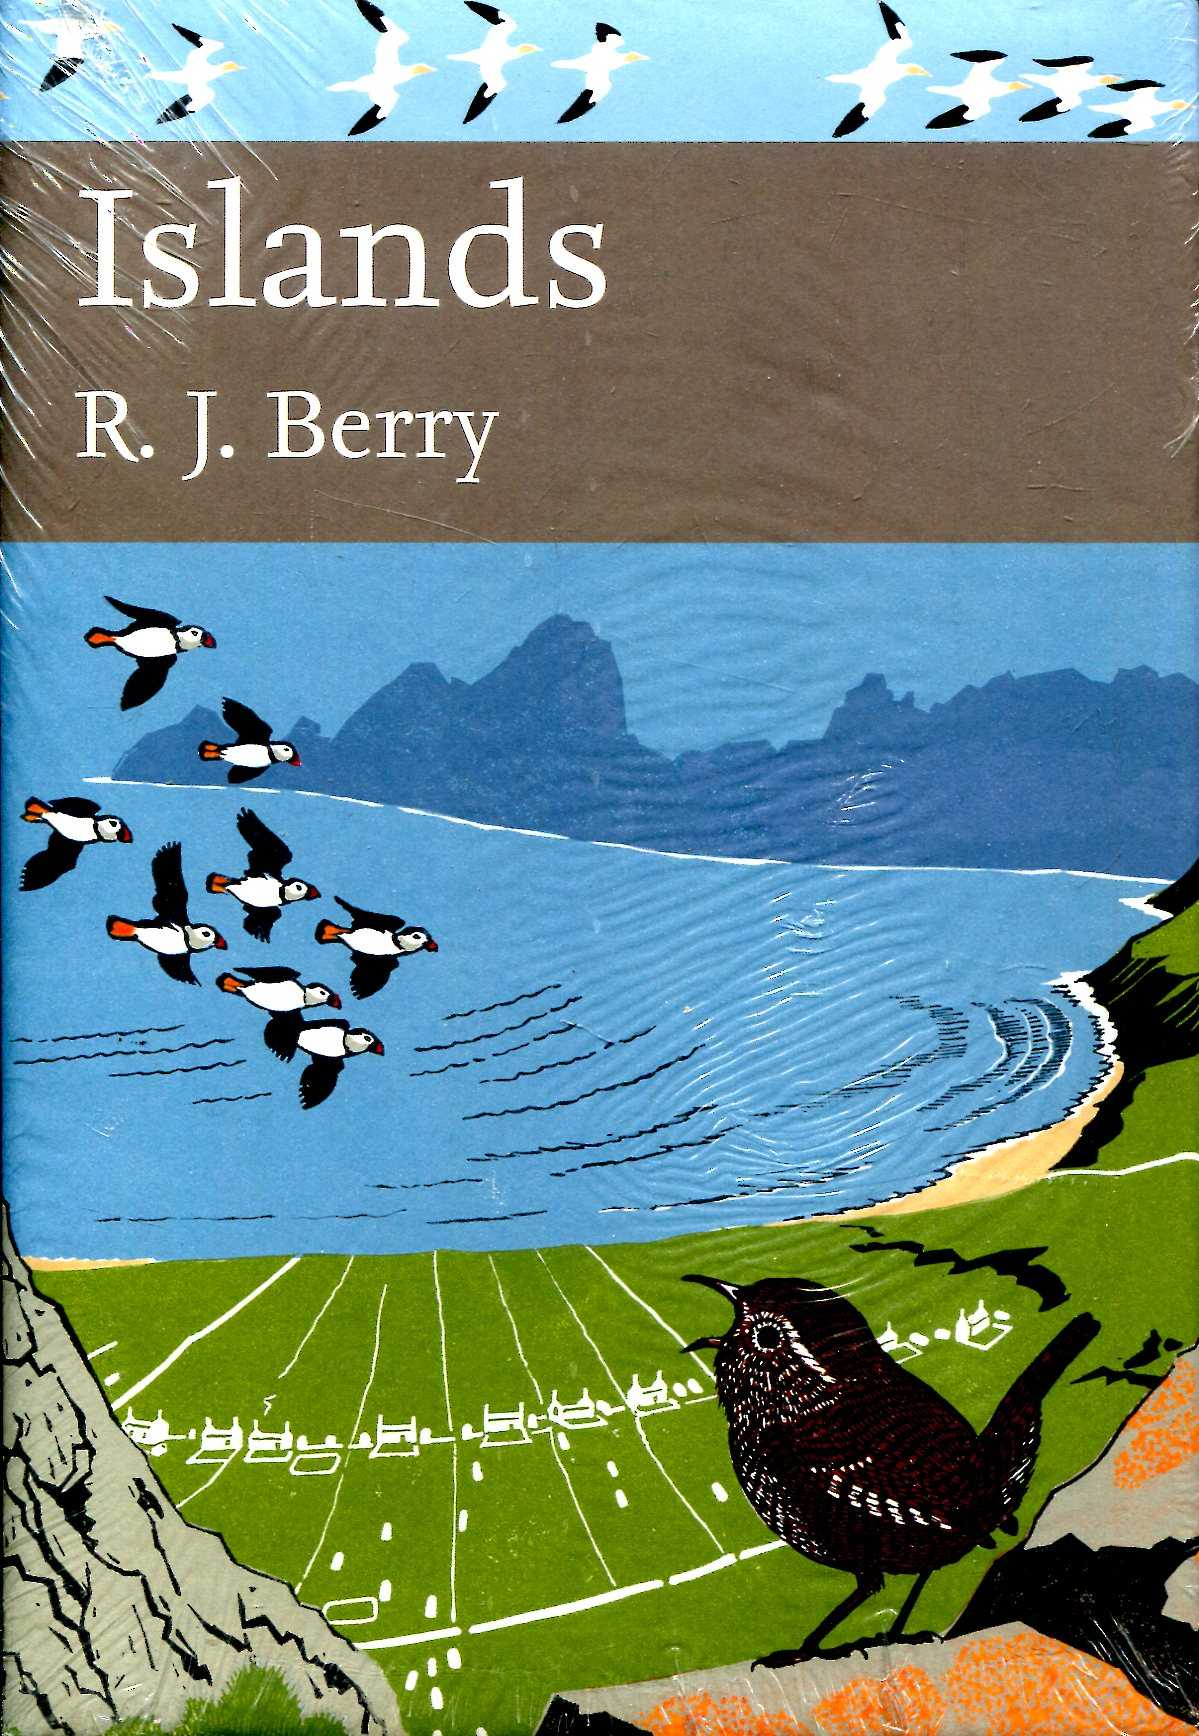 Image for Collins New Naturalist Library No. 109 - Islands